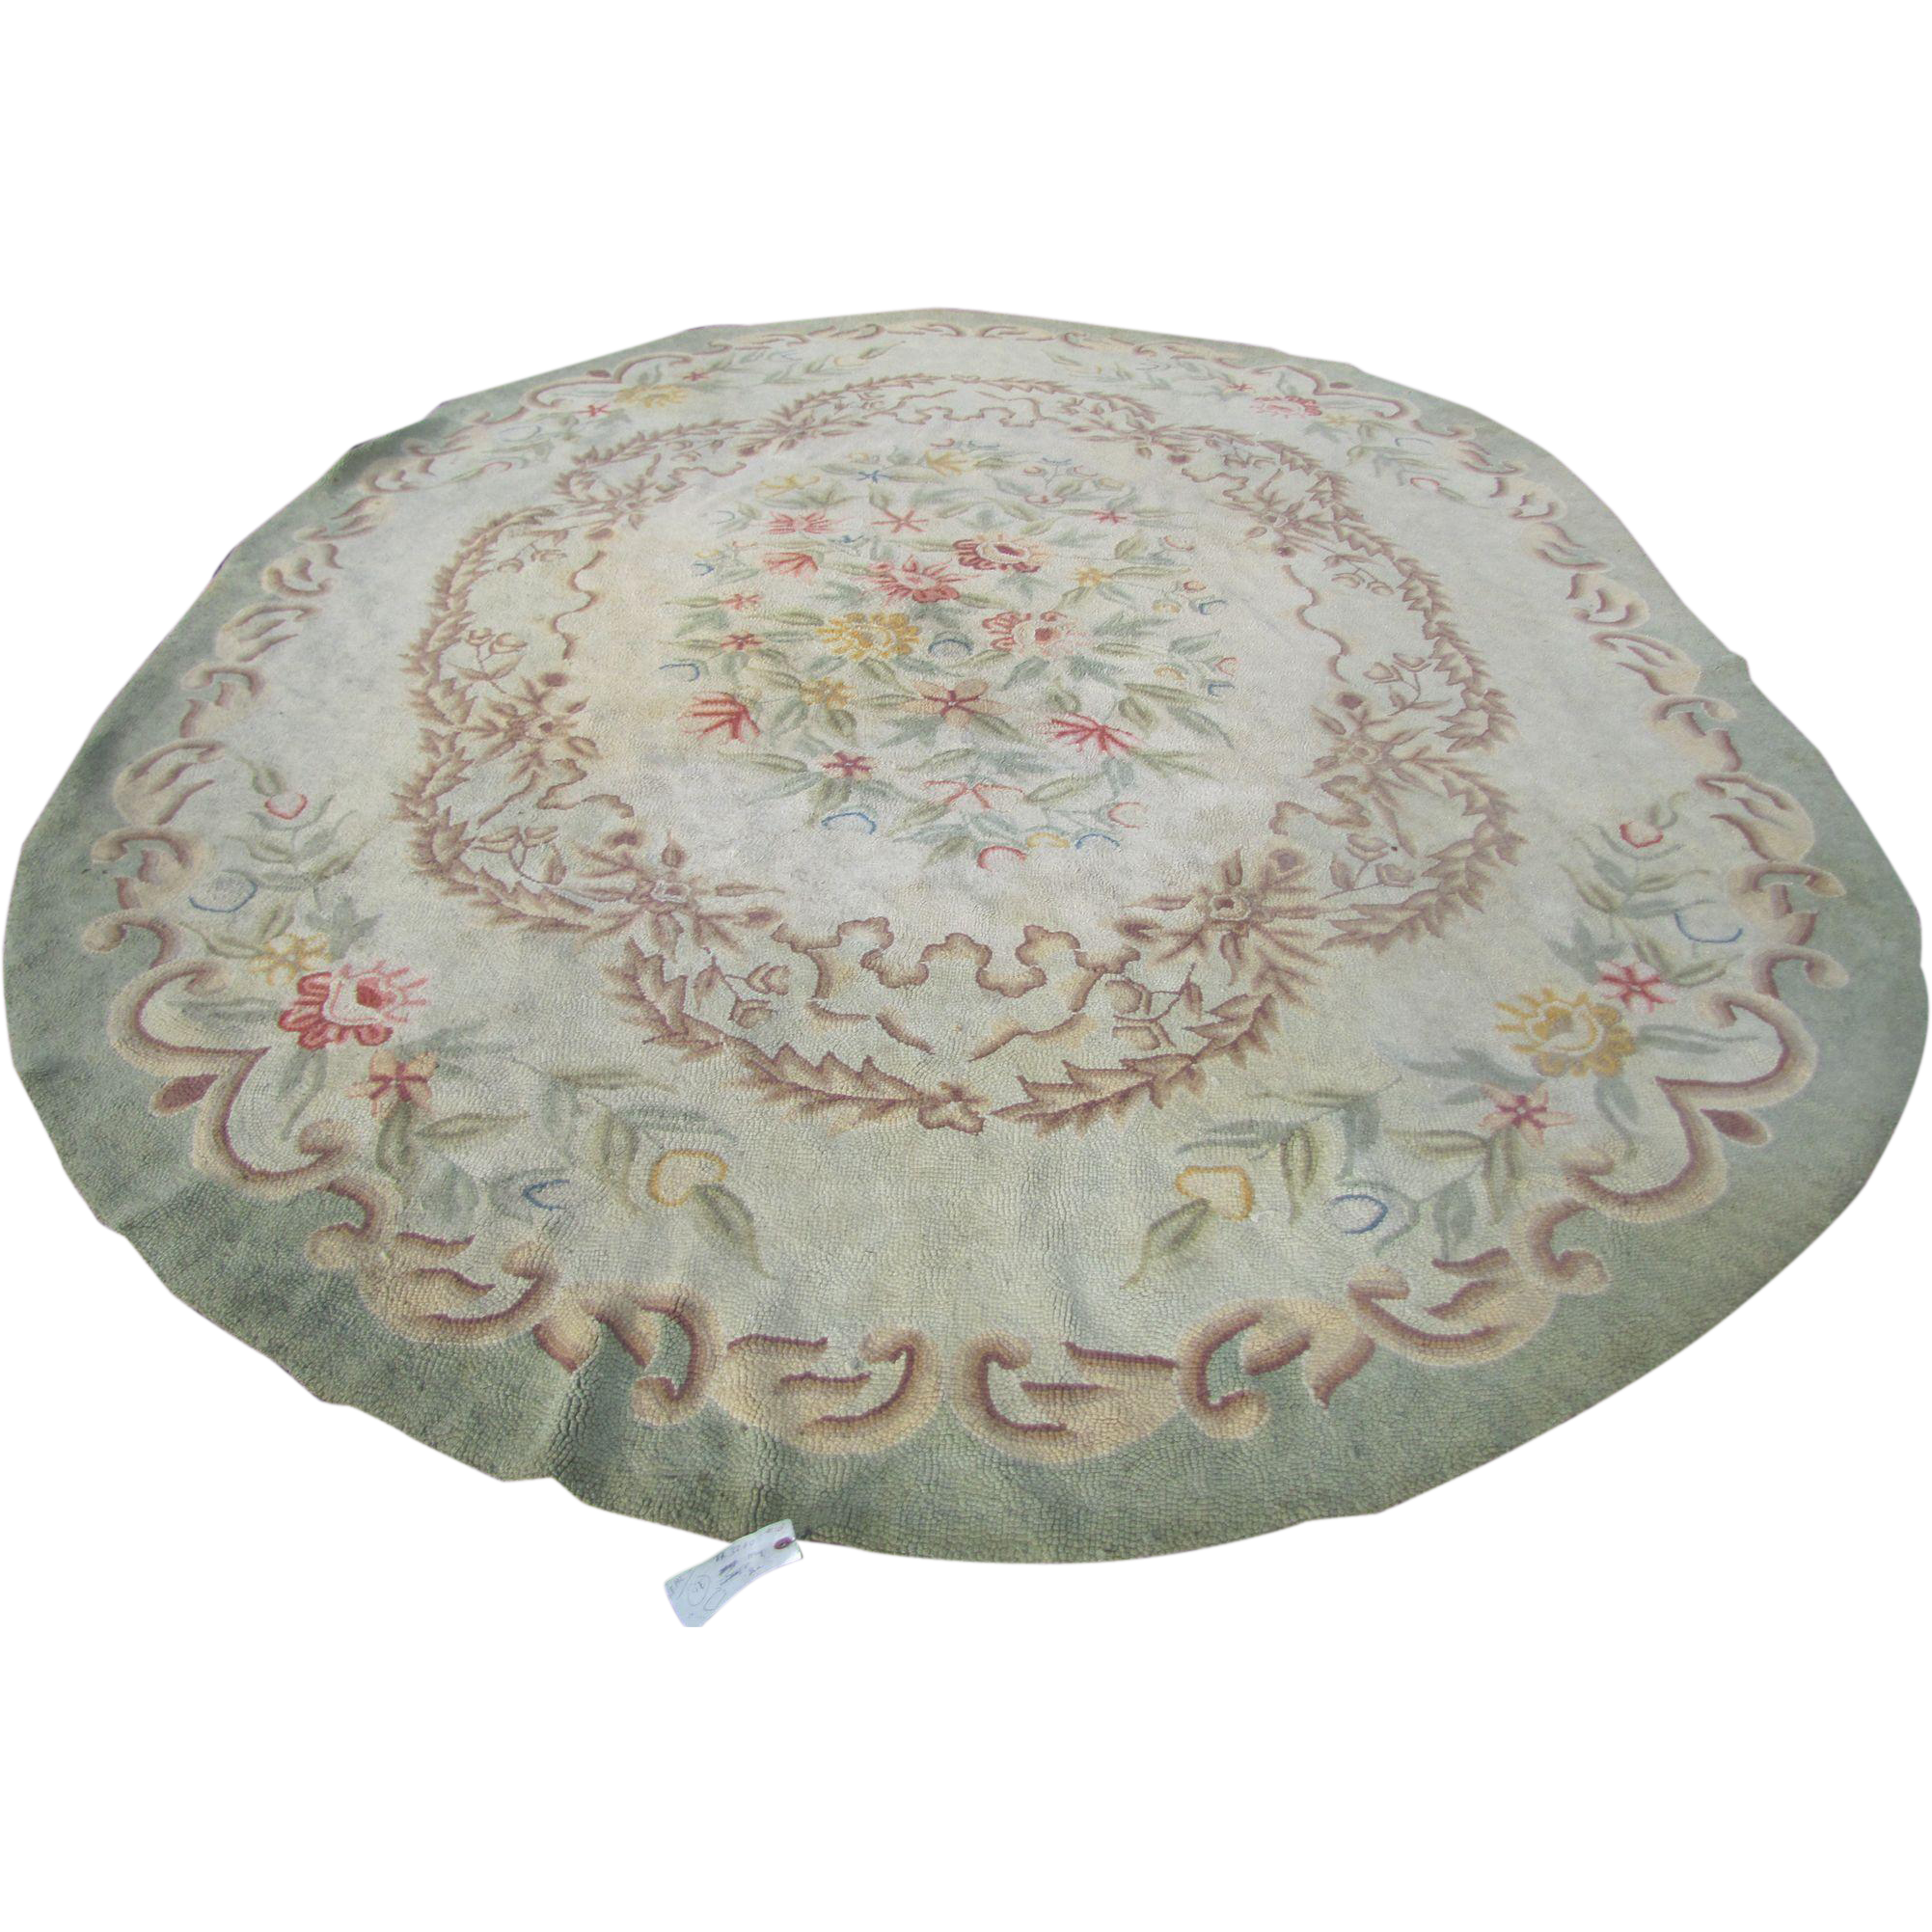 Vintage Room Size Oval Hooked Rug Rr3260 From Antique